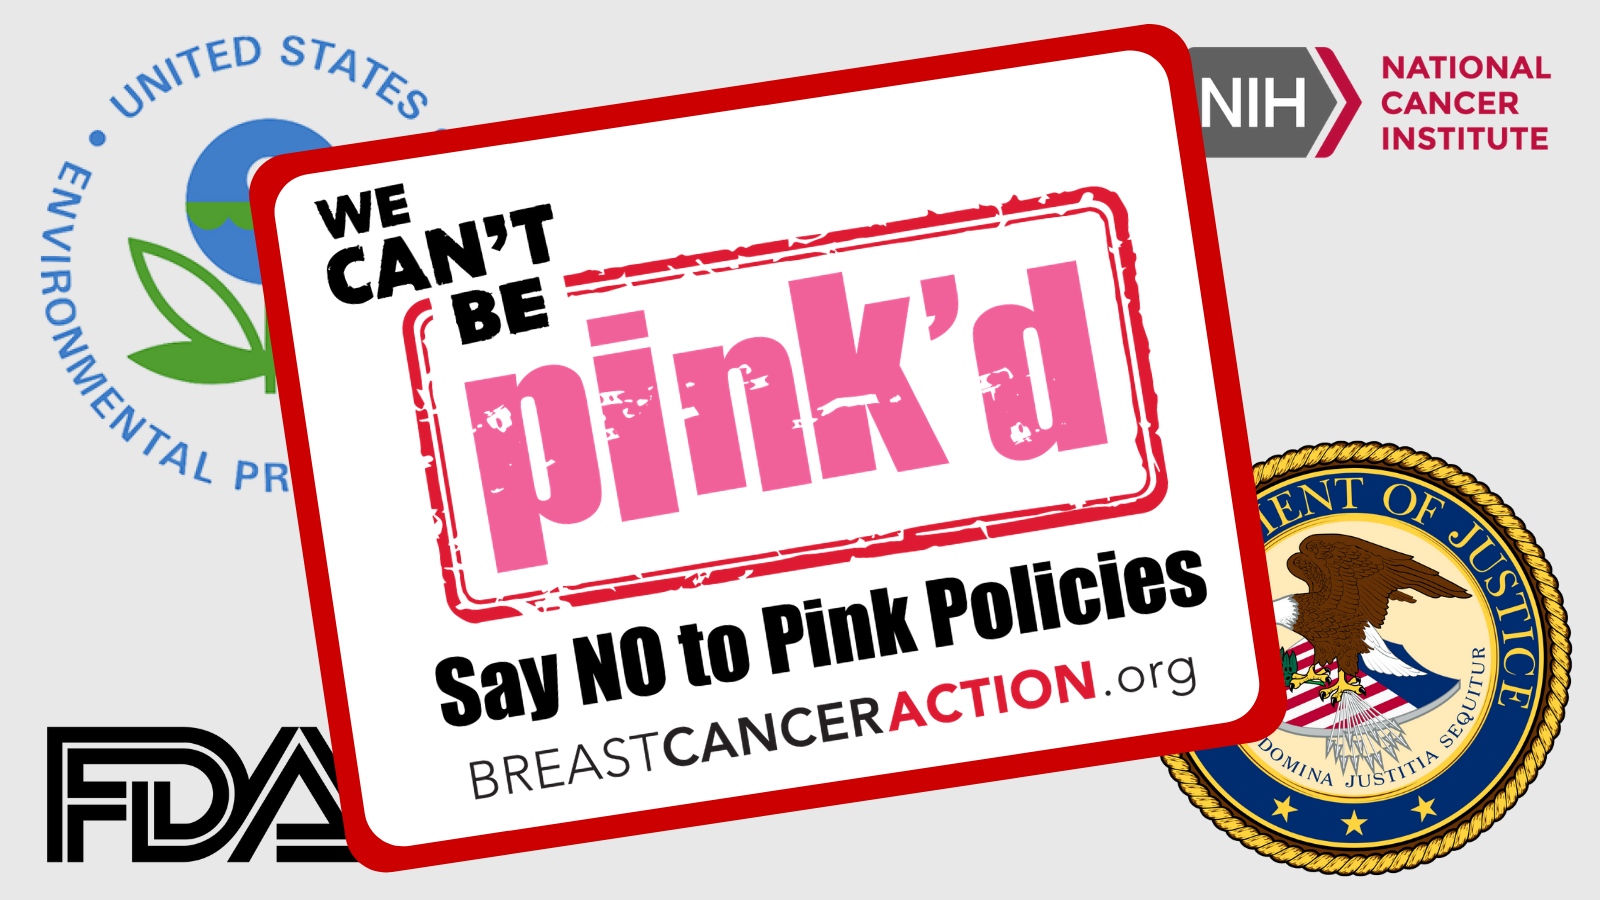 Think Before You Pink 2020 Campaign Image with logo and the logos of the EPA, FDA, NCI, and DOj.